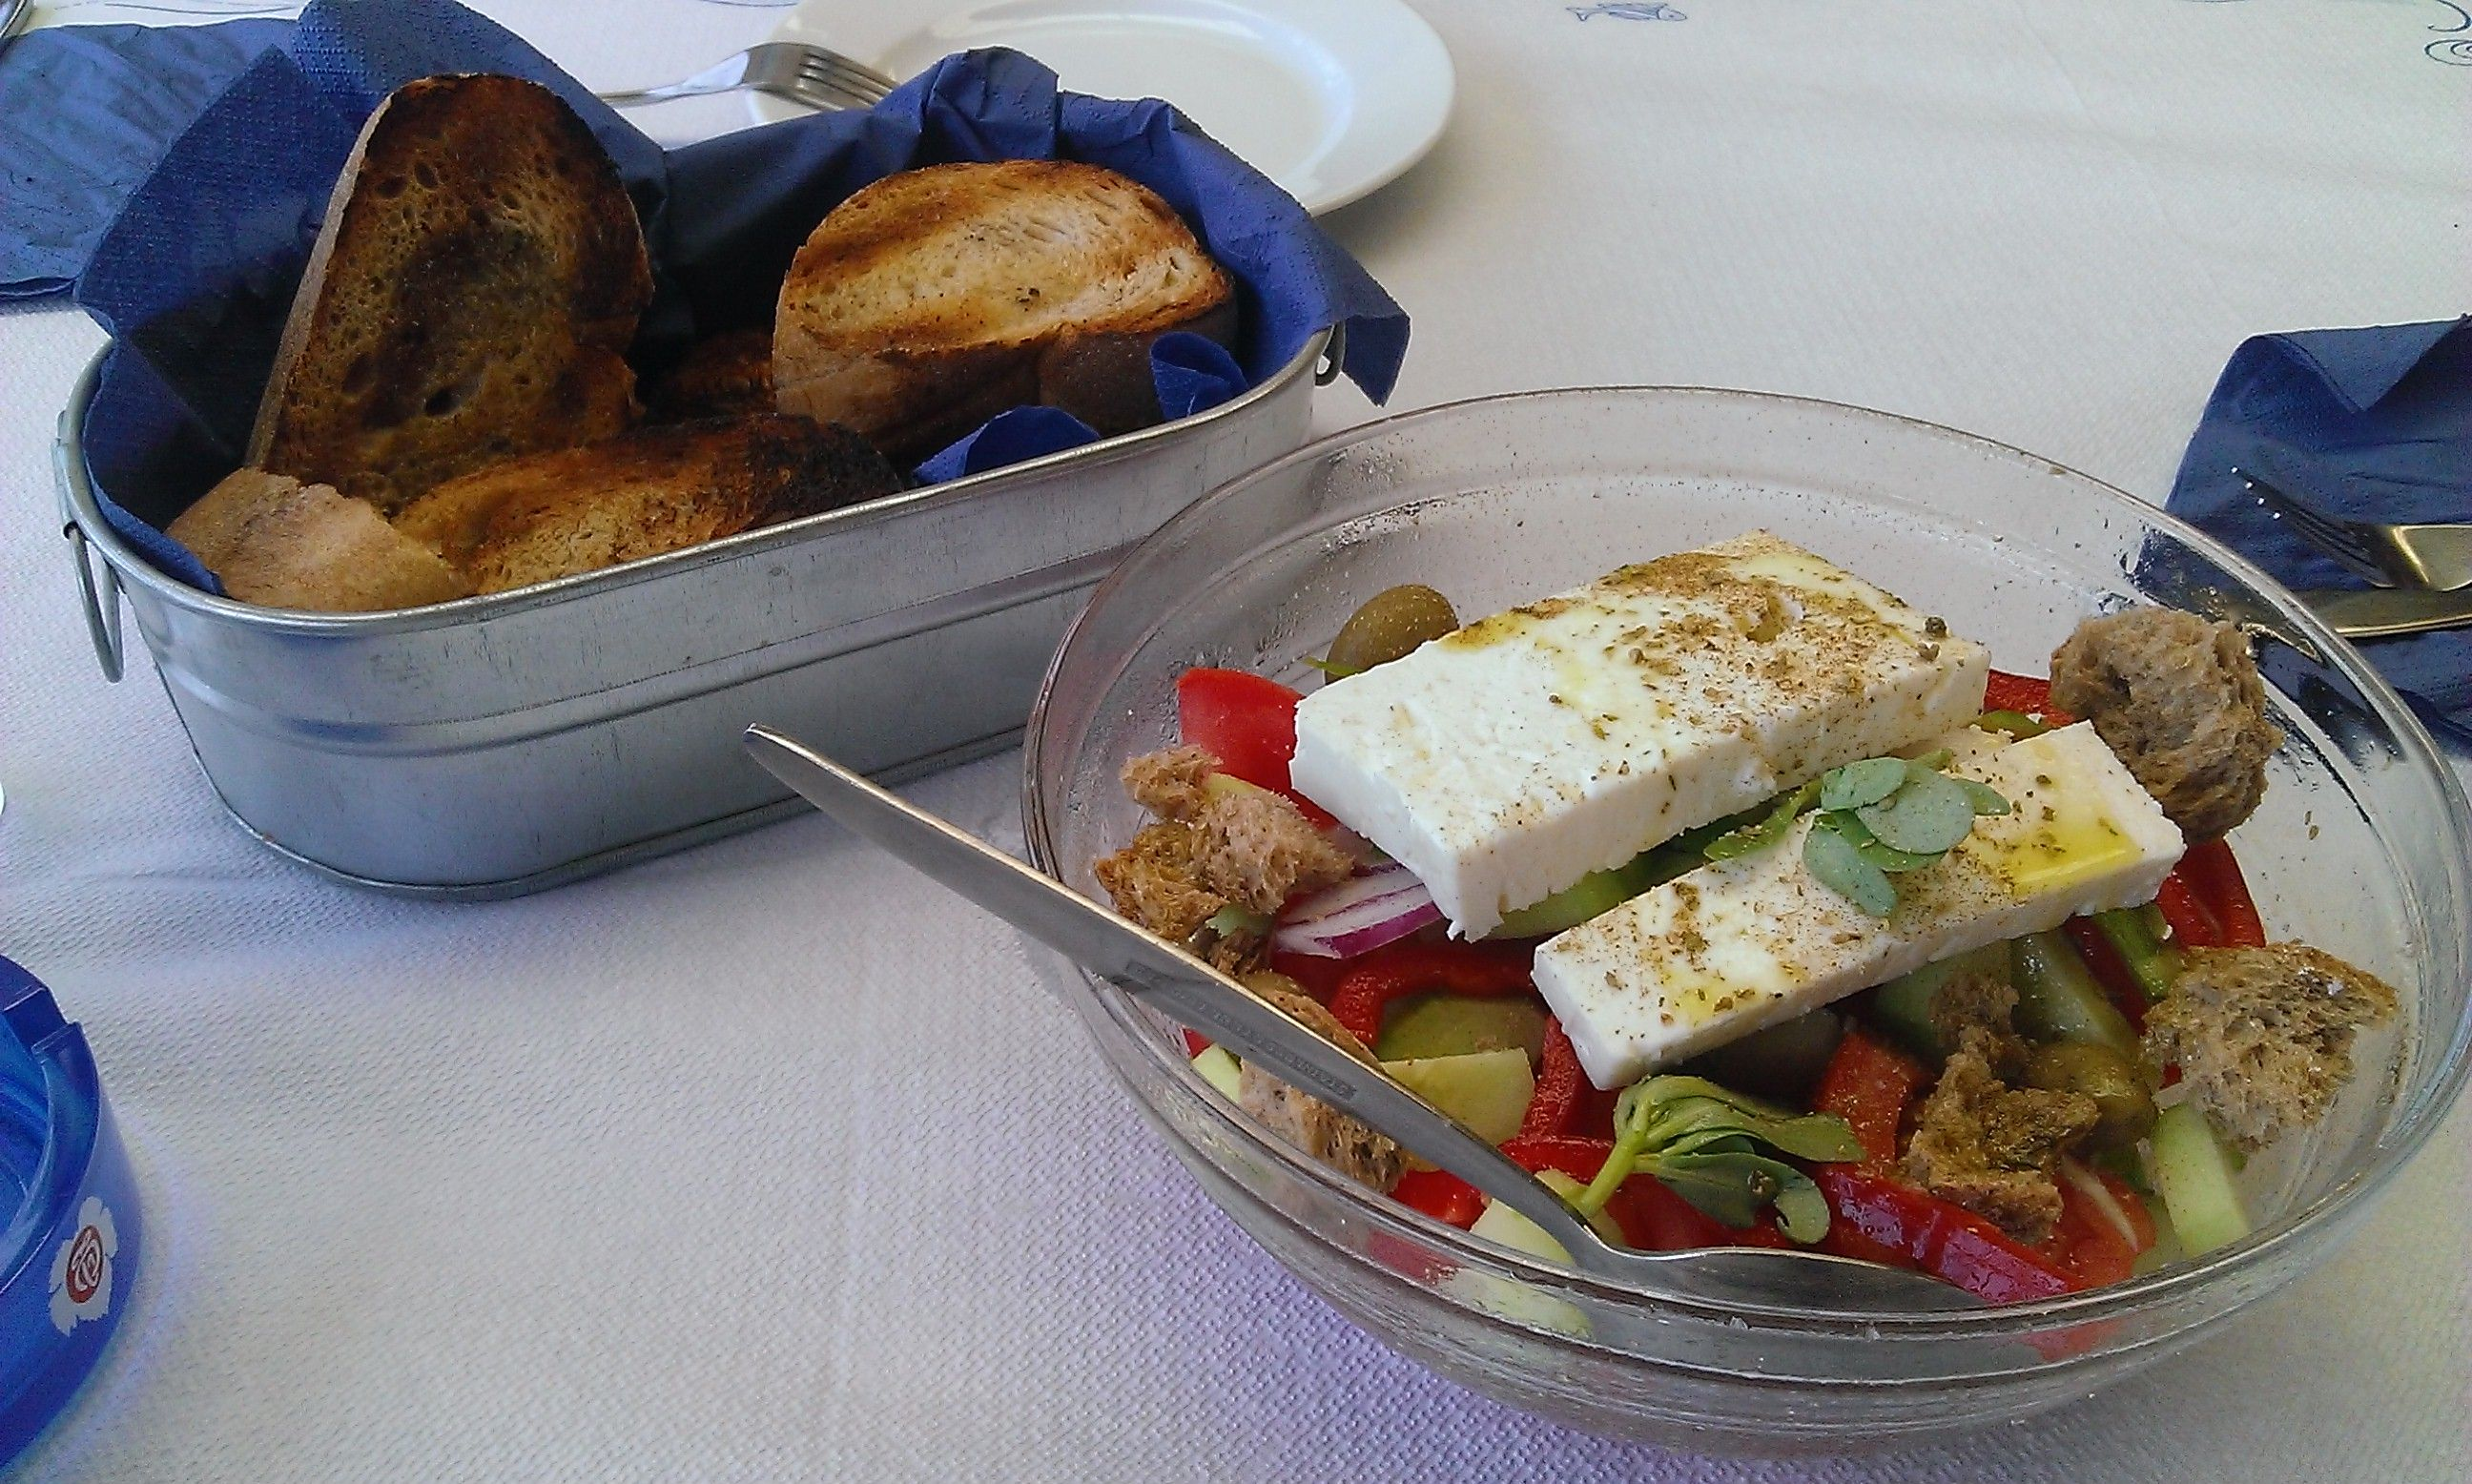 Greek salad, grilled bread with virgin olive oil and oregano